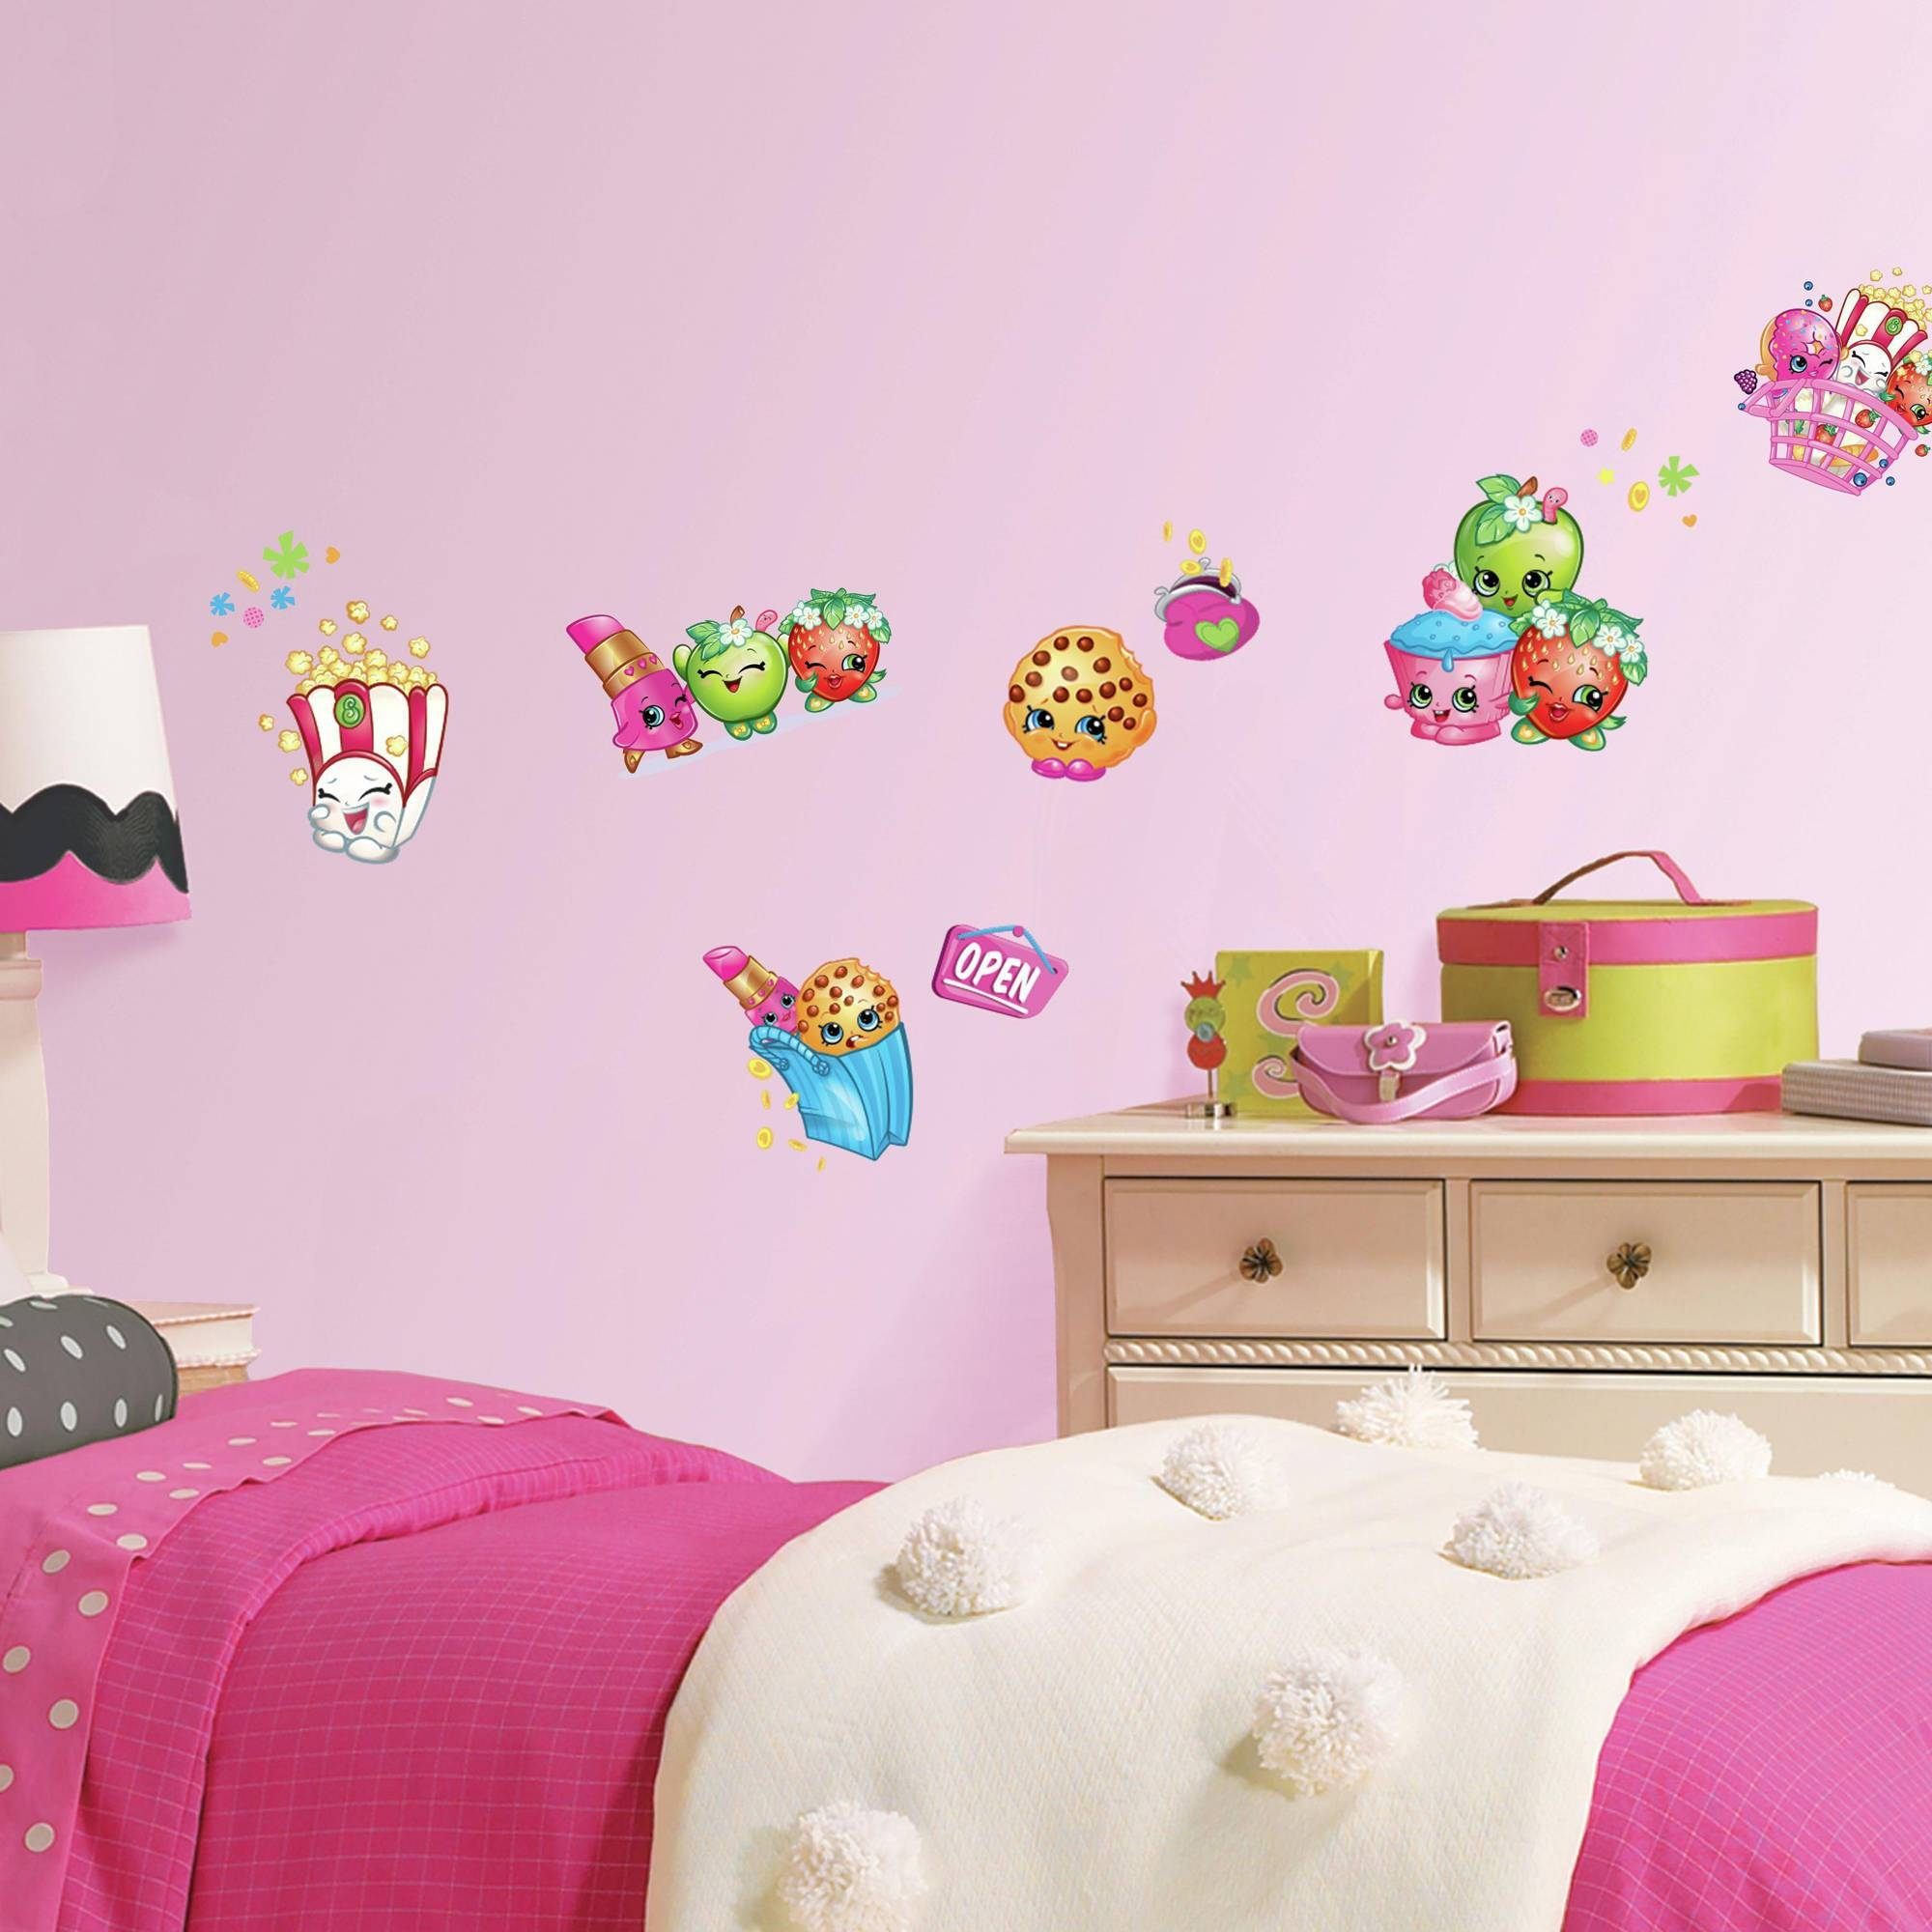 Roommates Shopkins Peel And Stick Wall Decals – Walmart For Most Recent Preschool Classroom Wall Decals (View 21 of 30)